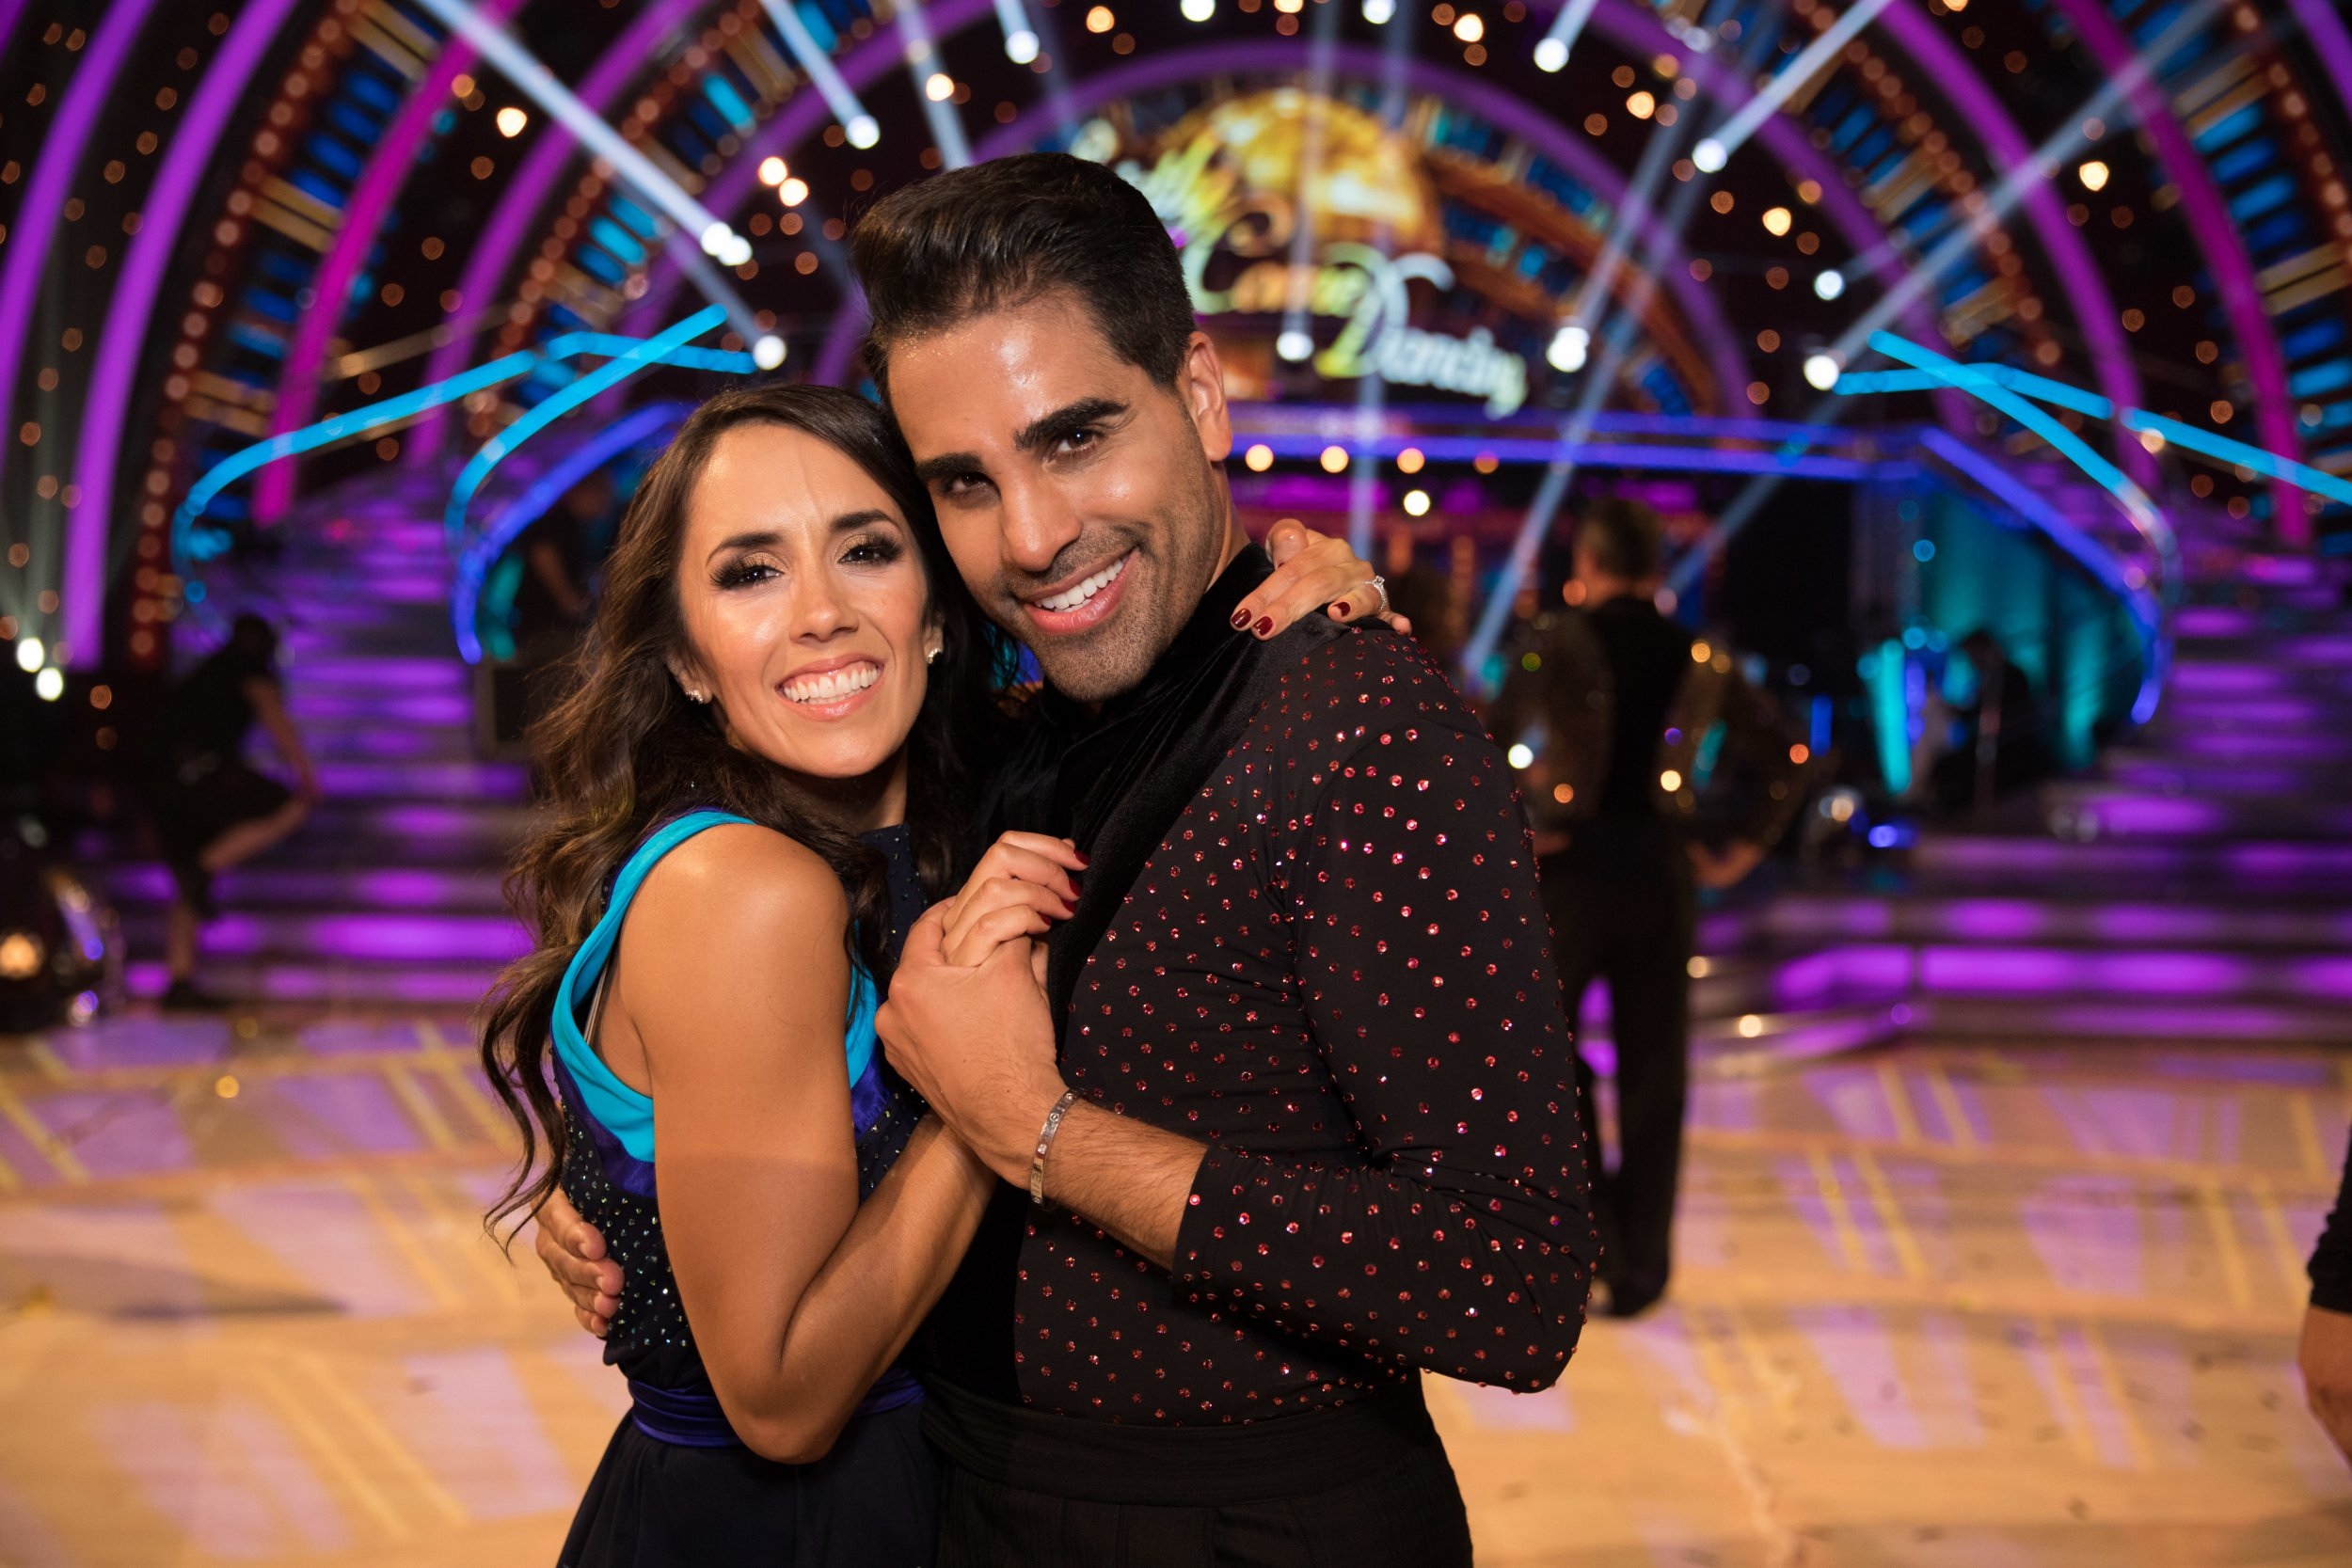 Dr Ranj Singh admits that he 'wasn't prepared' for Strictly Come Dancing as he gets ready for his first dance